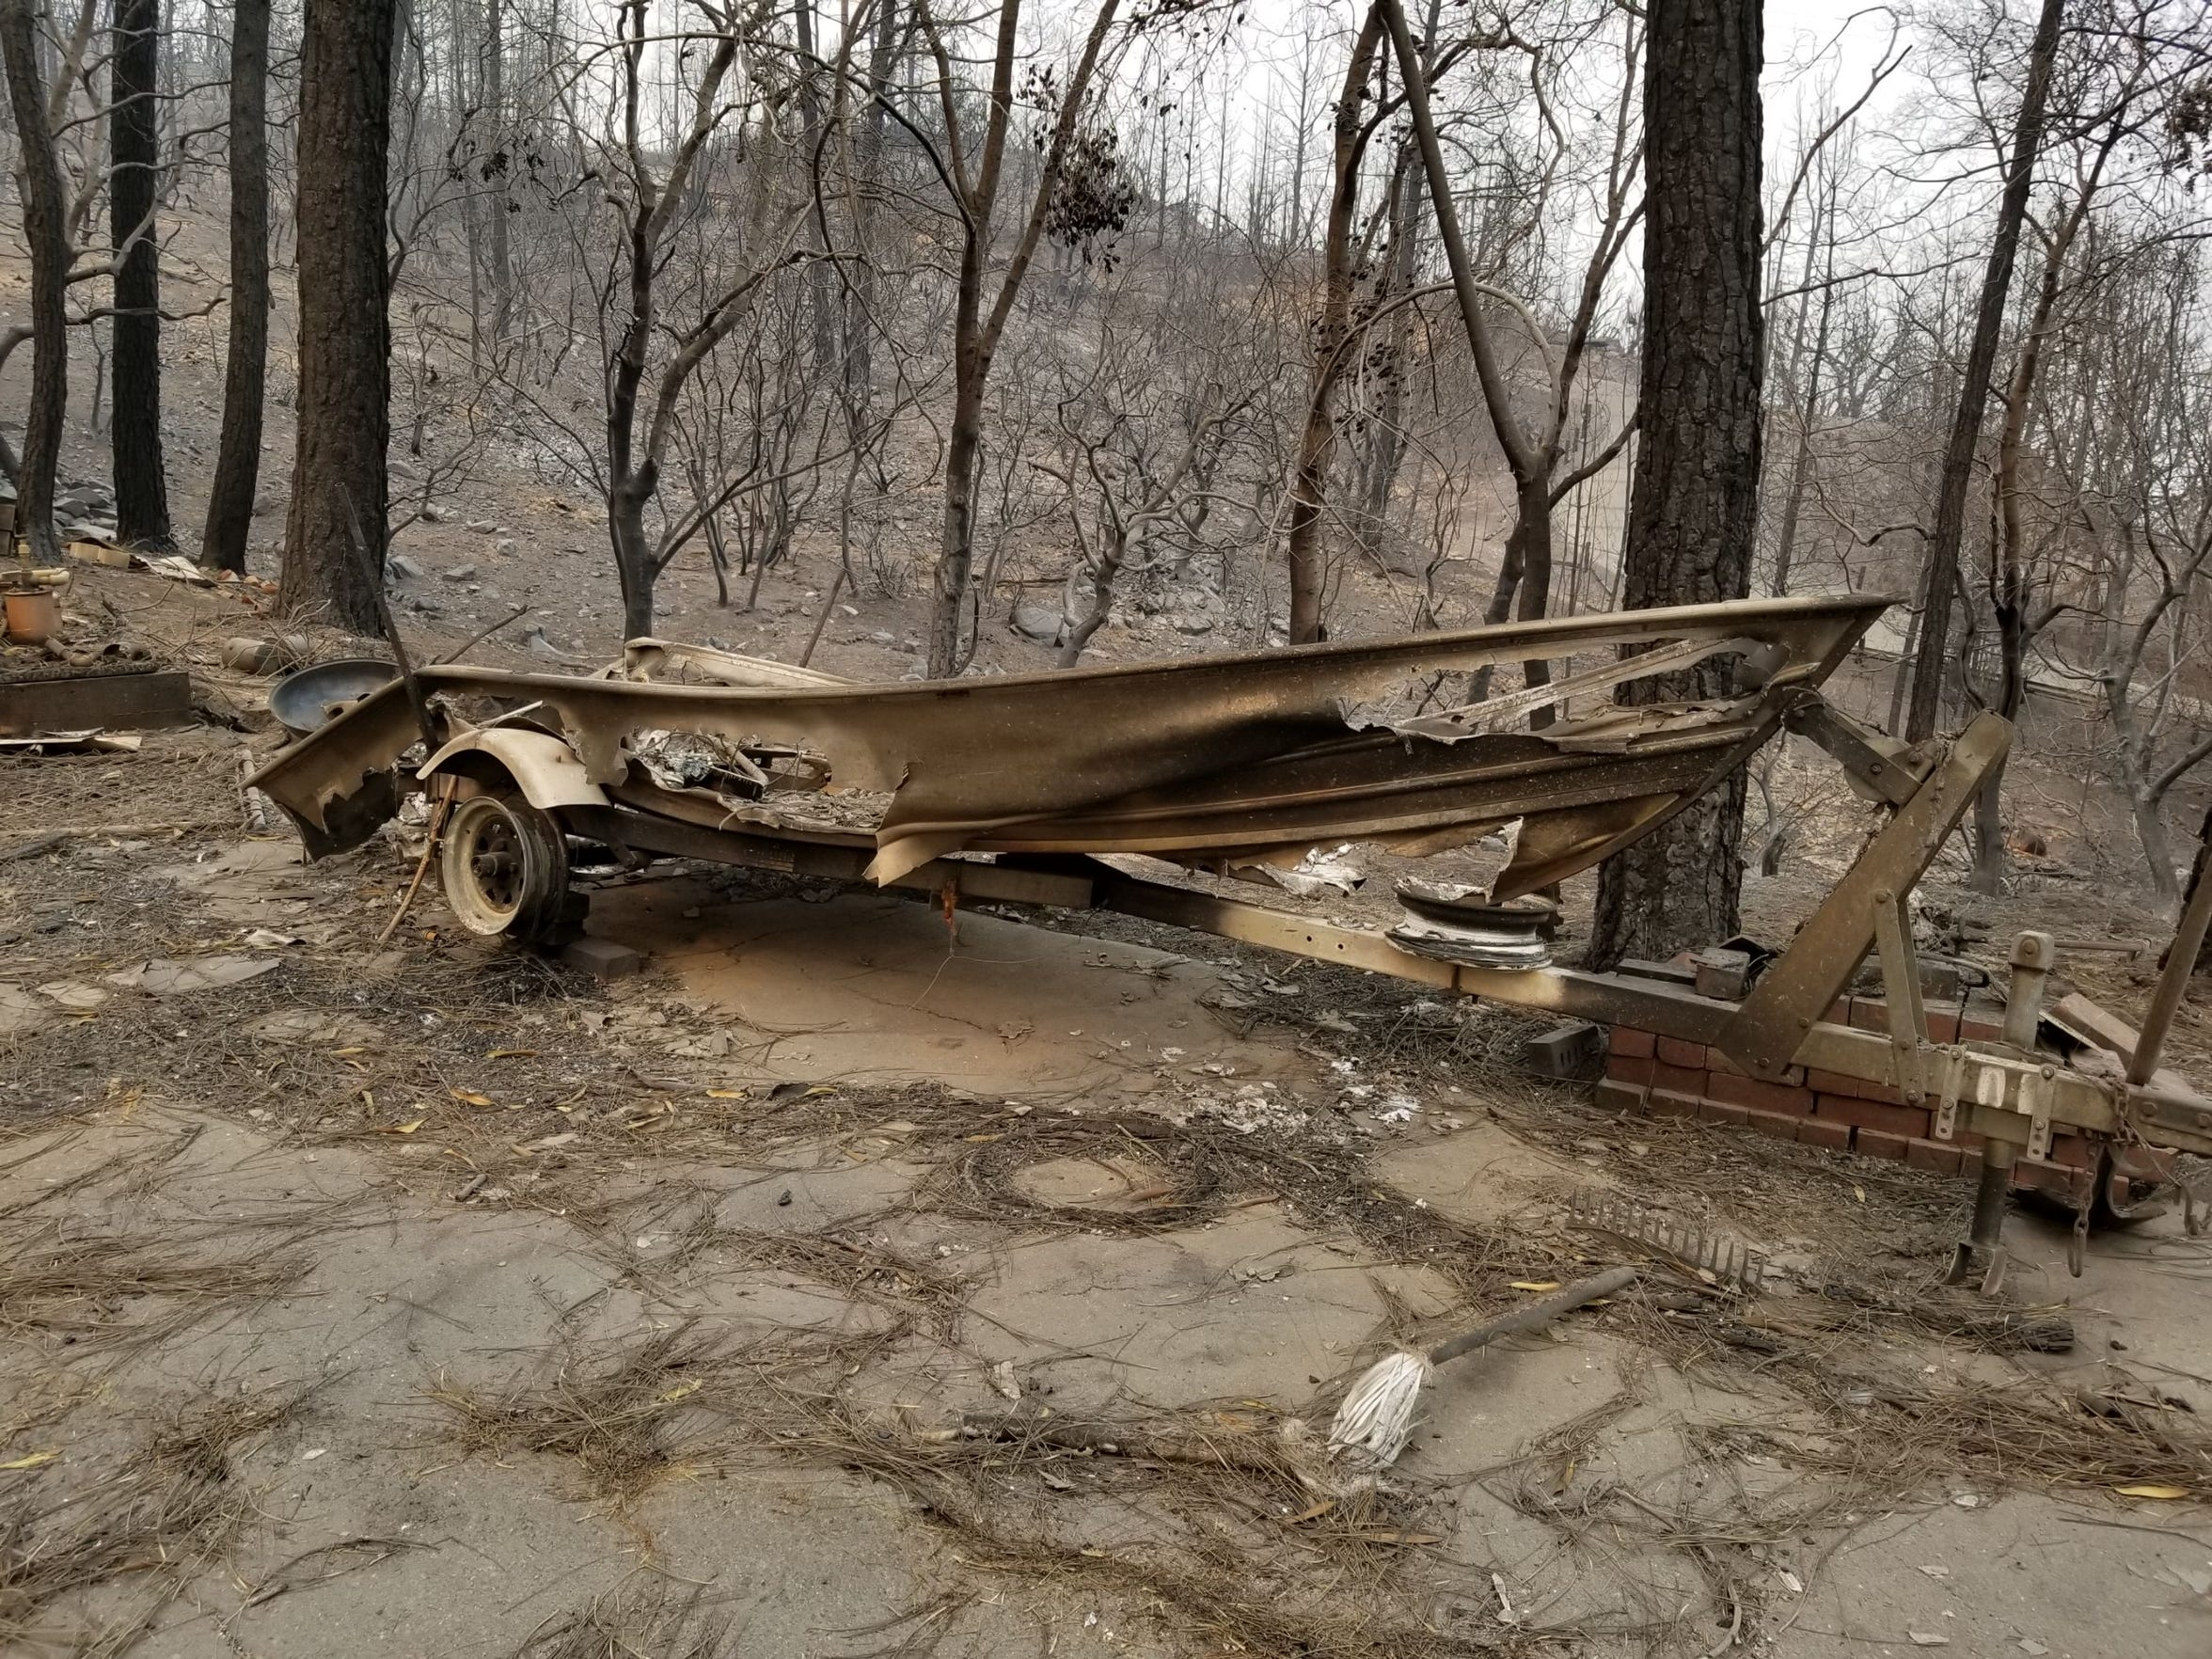 The remains of Lynne and Phil Pearson's boat after the Carr Fire tore through their Shasta neighborhood in July.